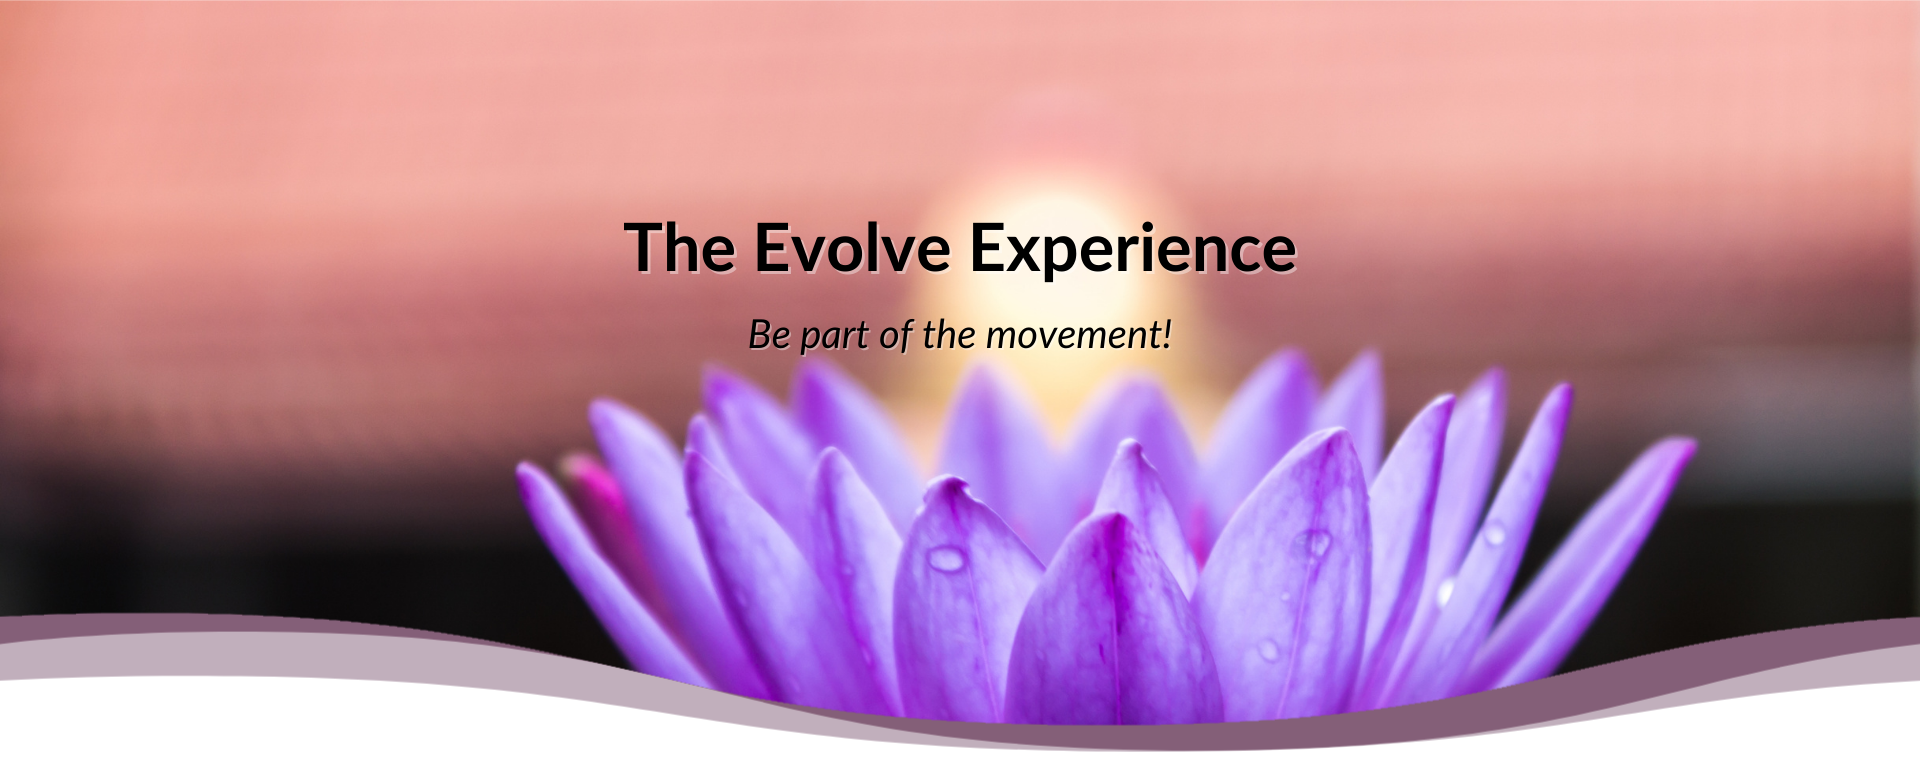 The Evolve Experience